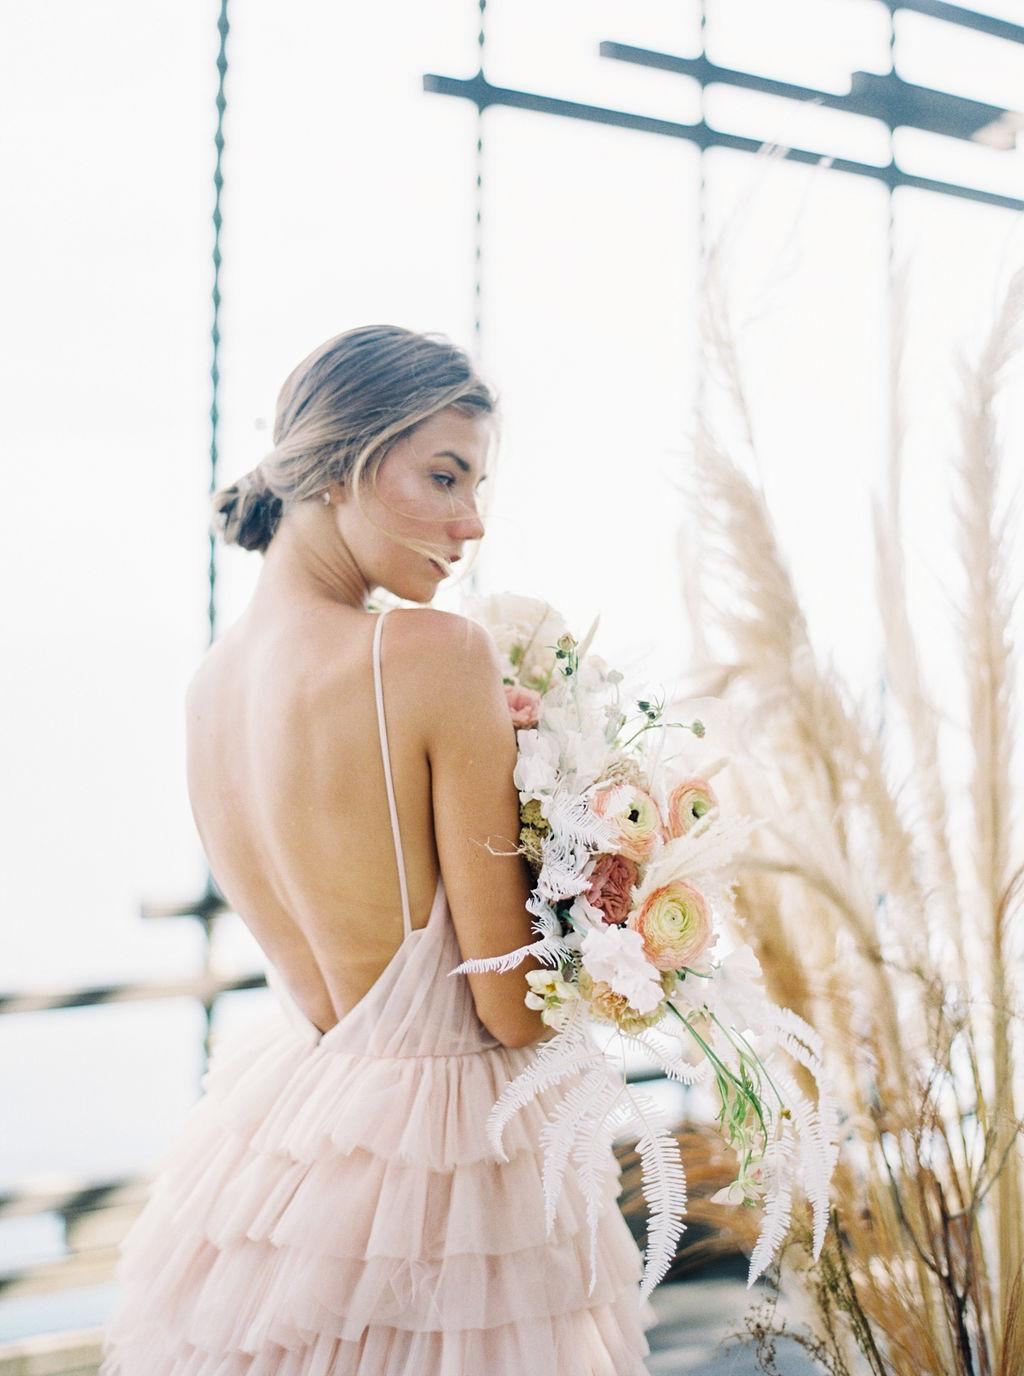 The Dreamiest Ruffled Wedding Dress